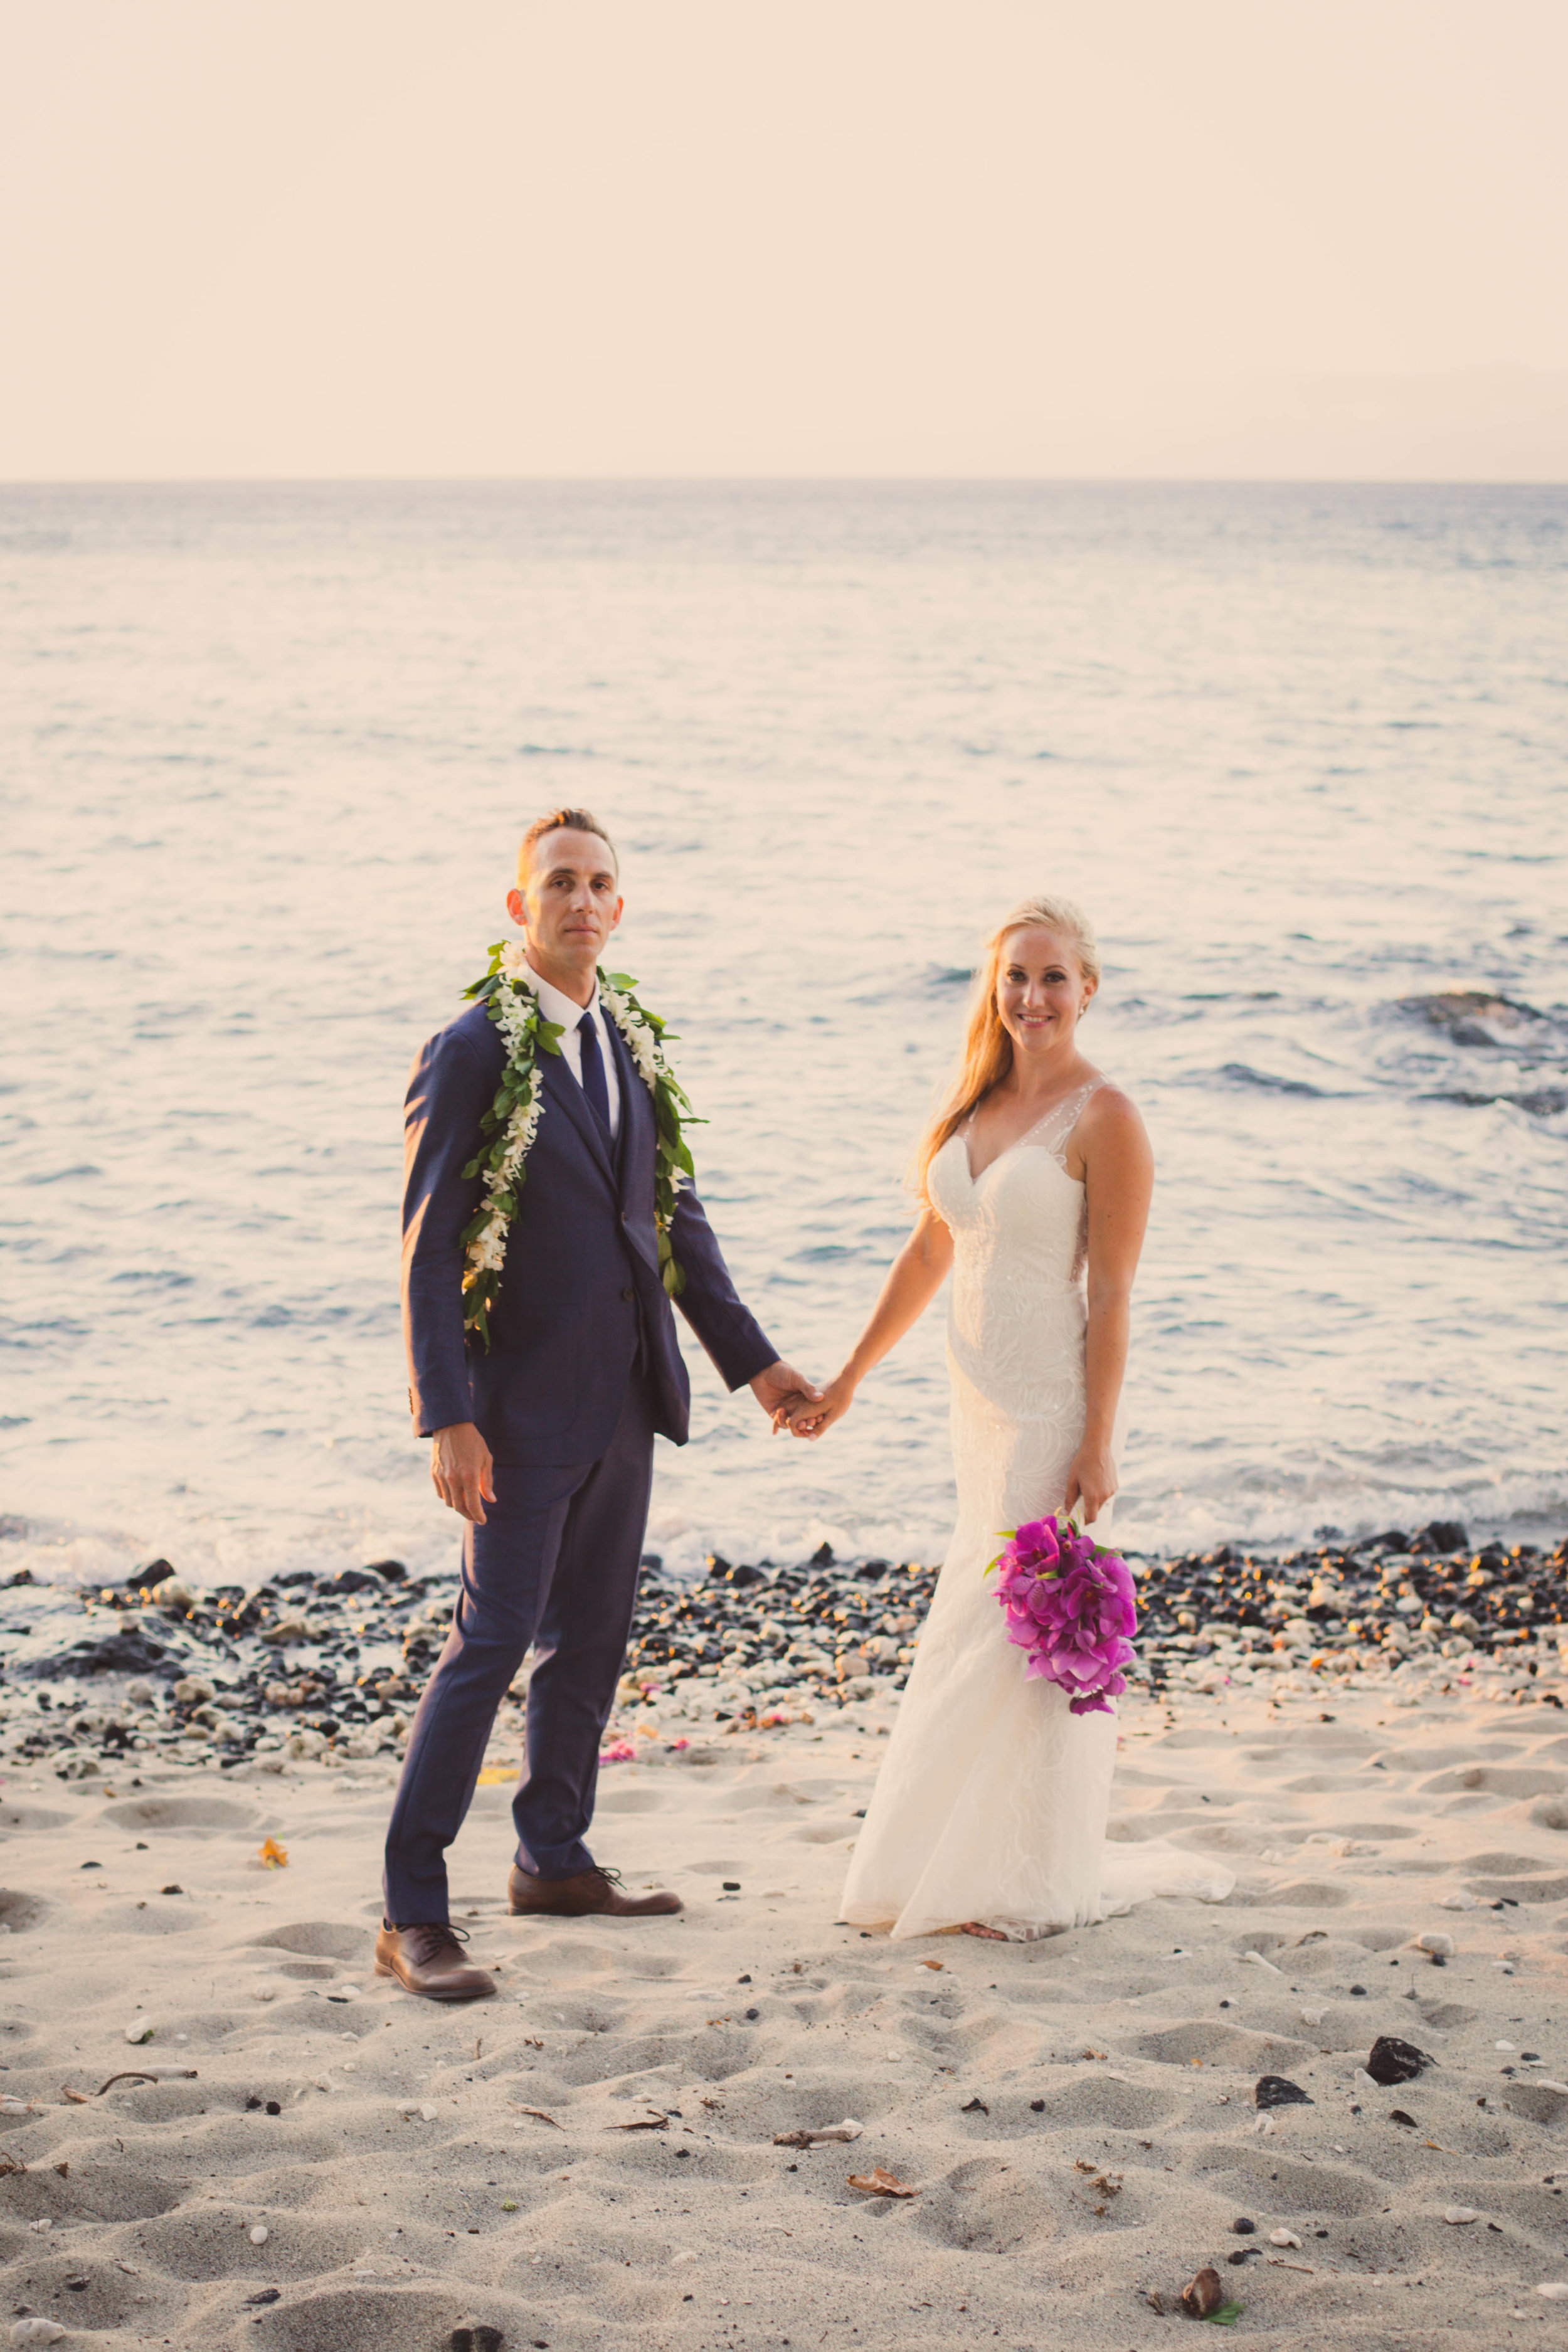 big island hawaii fairmont orchid beach wedding © kelilina photography 20170812184902-1.jpg